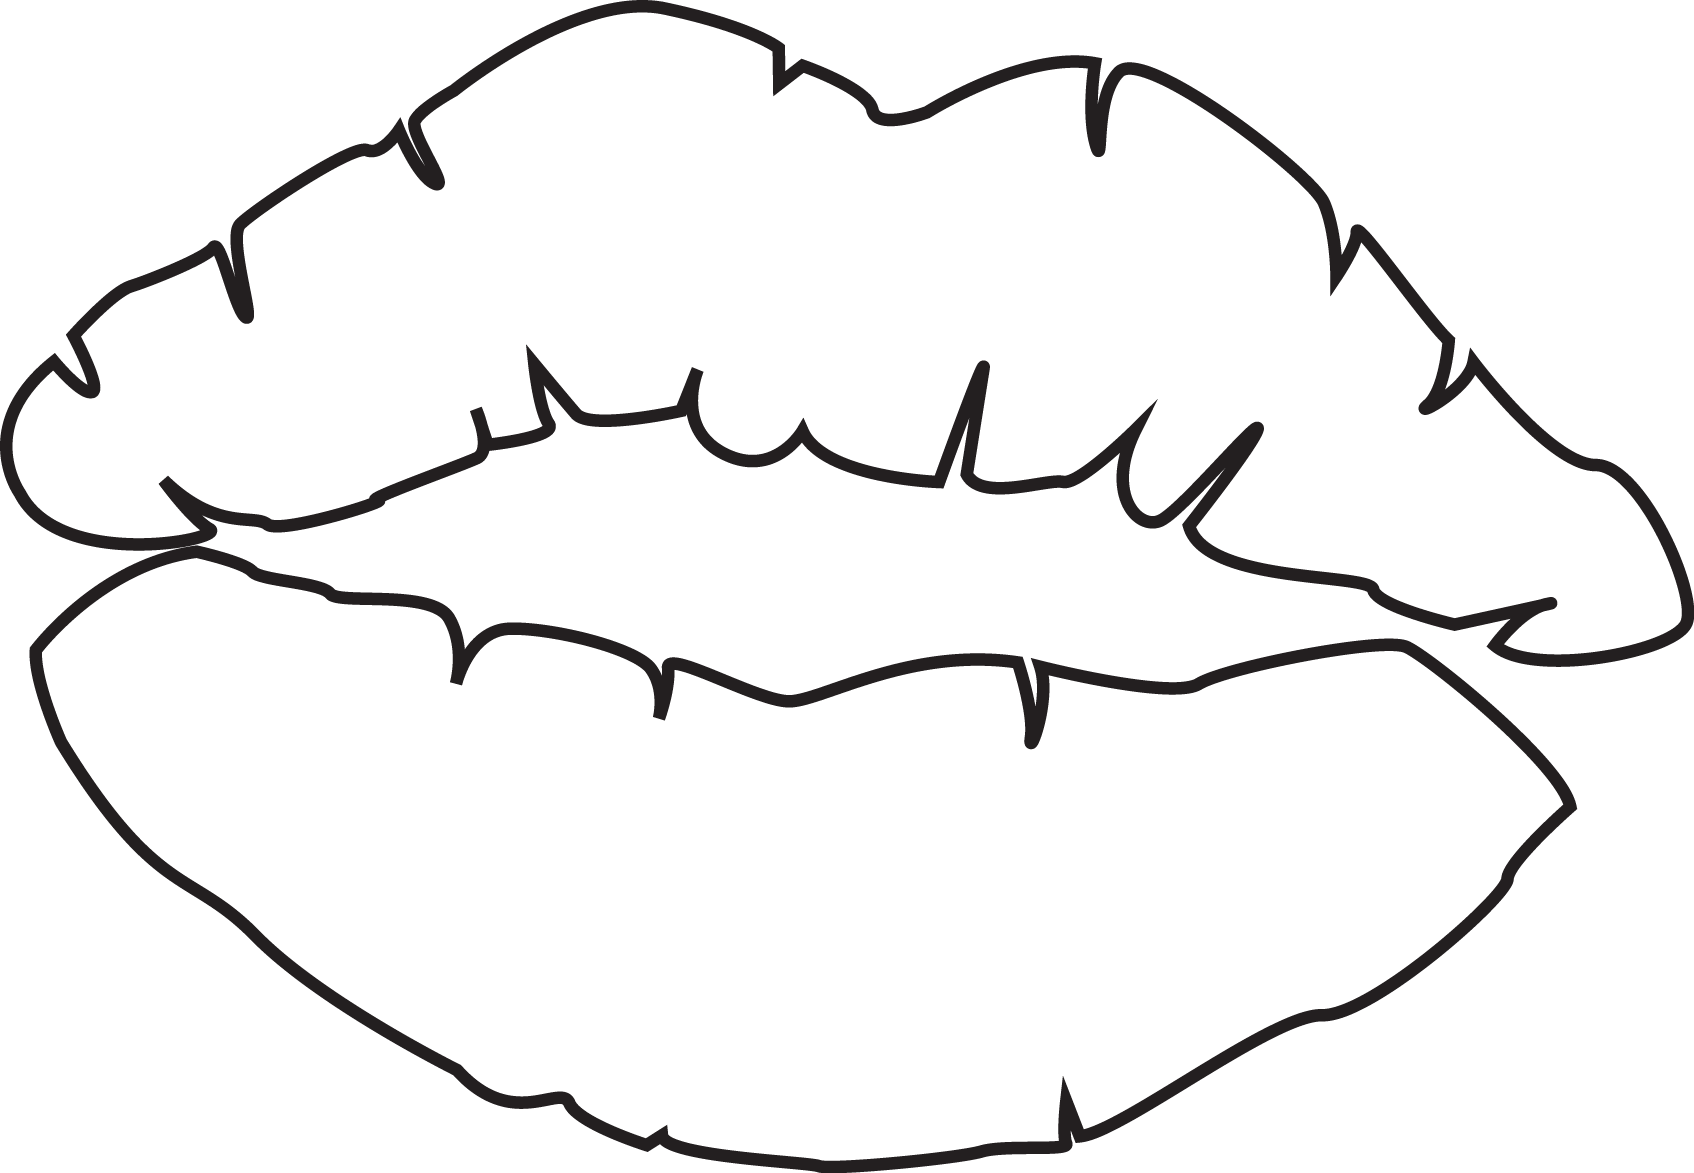 It is an image of Juicy Lips Outline Drawing